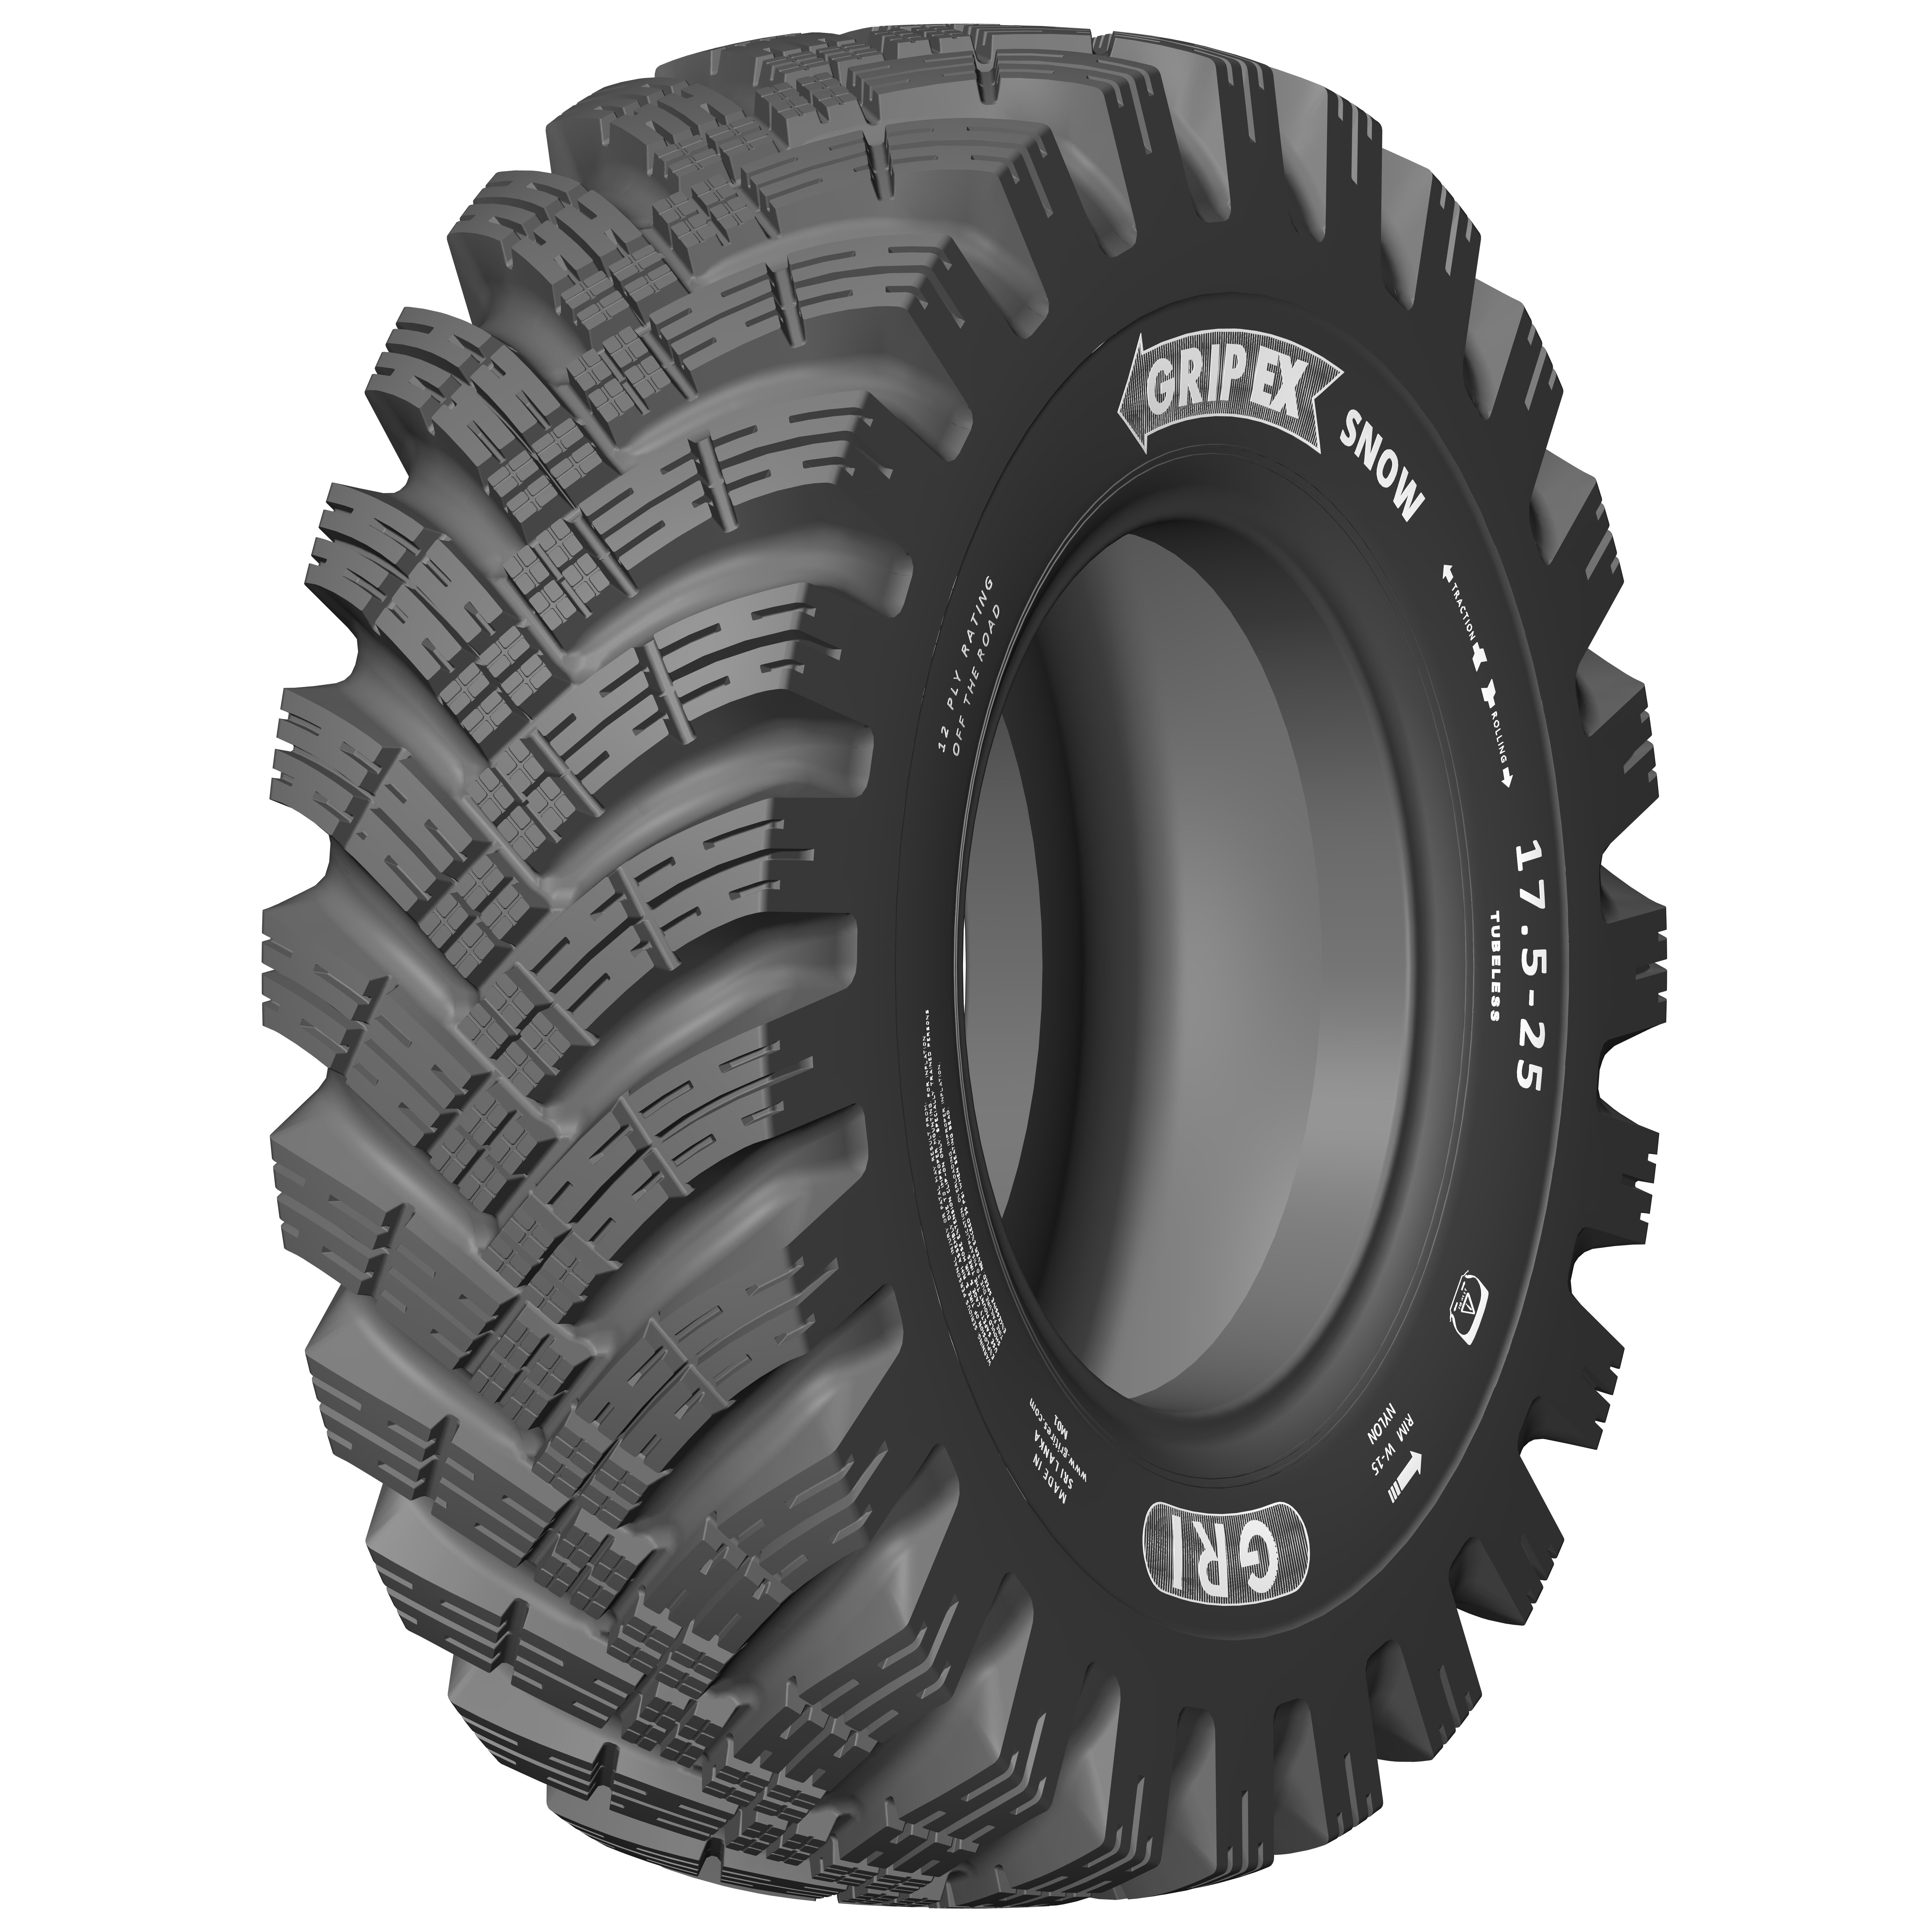 GRI Introduces OTR Tire for Winter Use